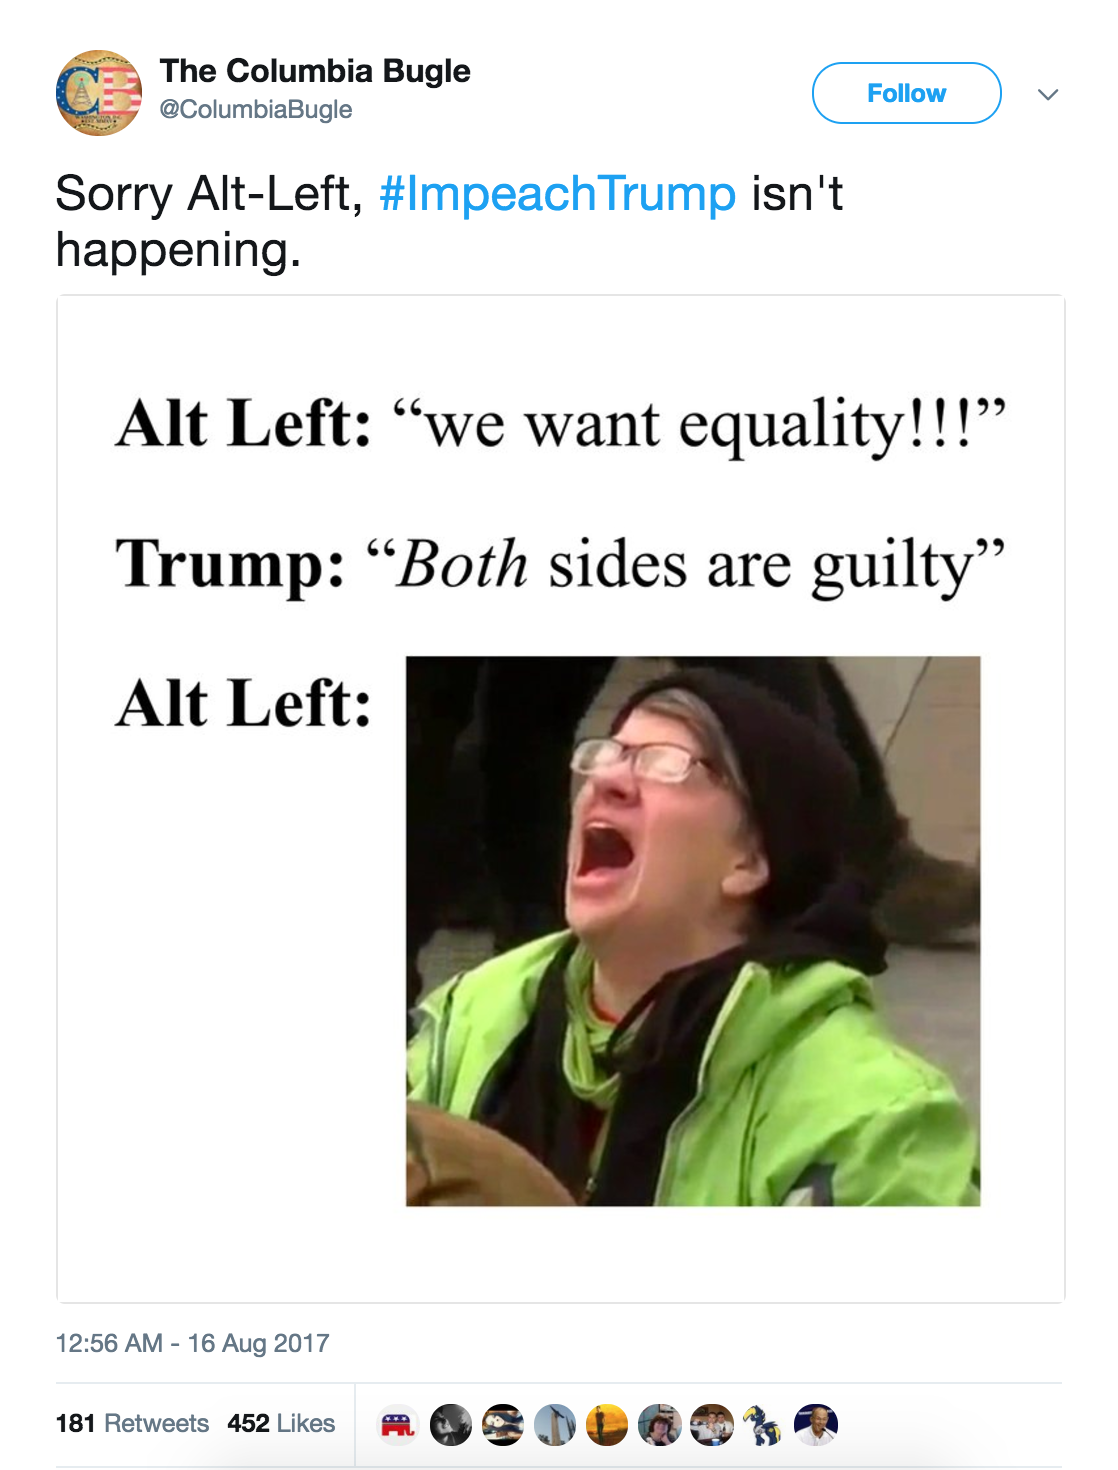 what is alt-left